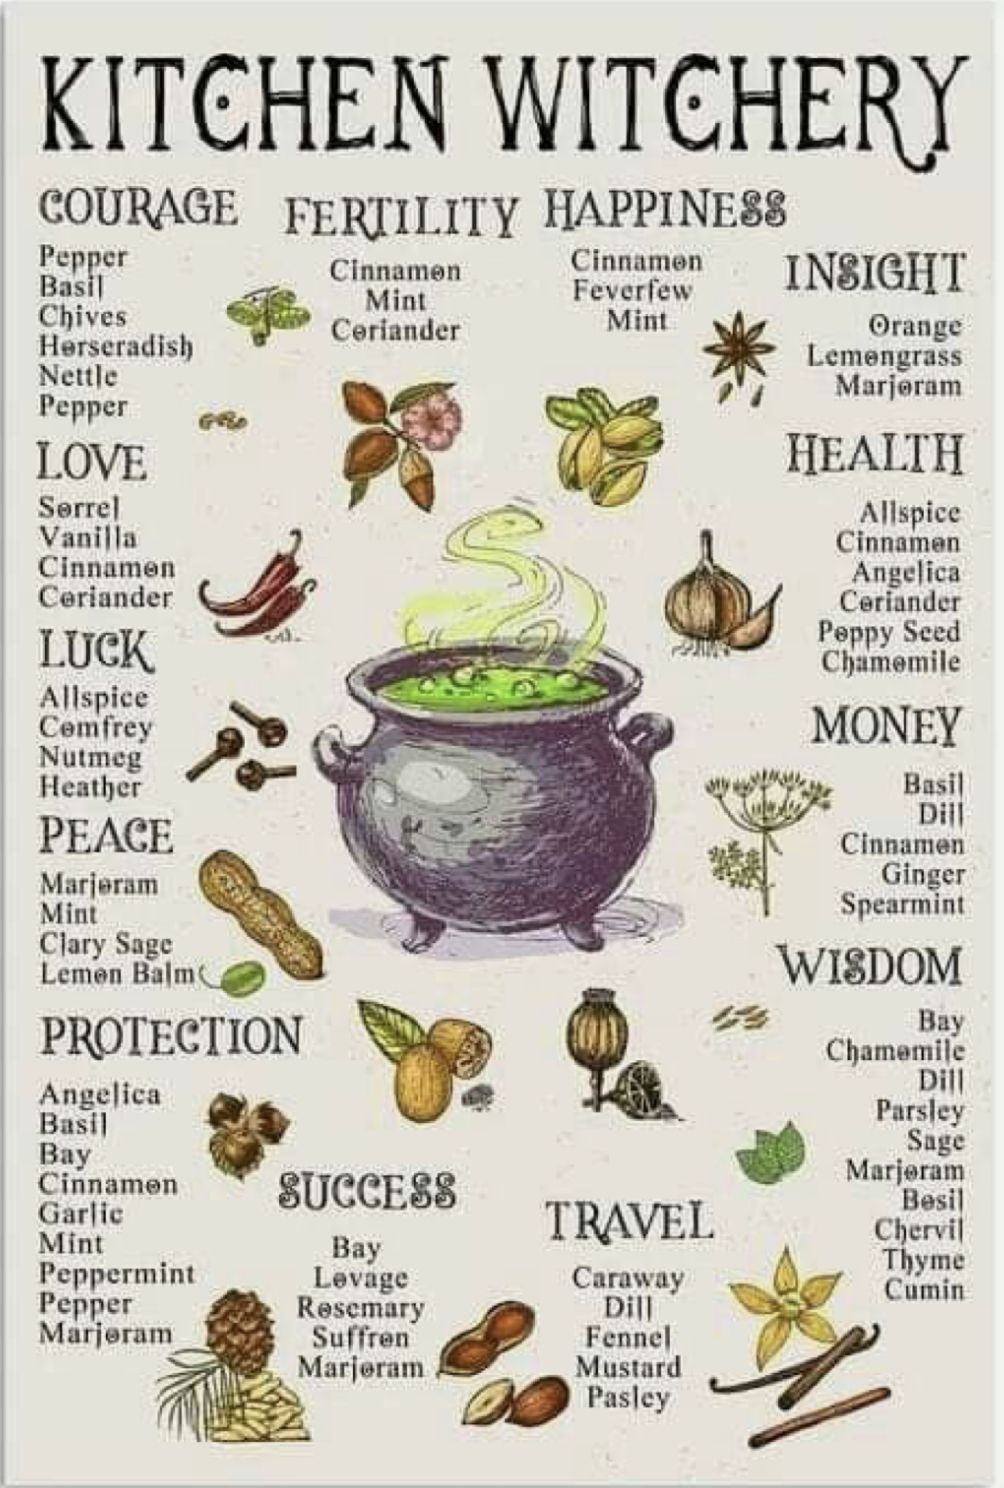 #kitchen #witchery #spellwork #celtic #witch #pagan #wicca #herbs